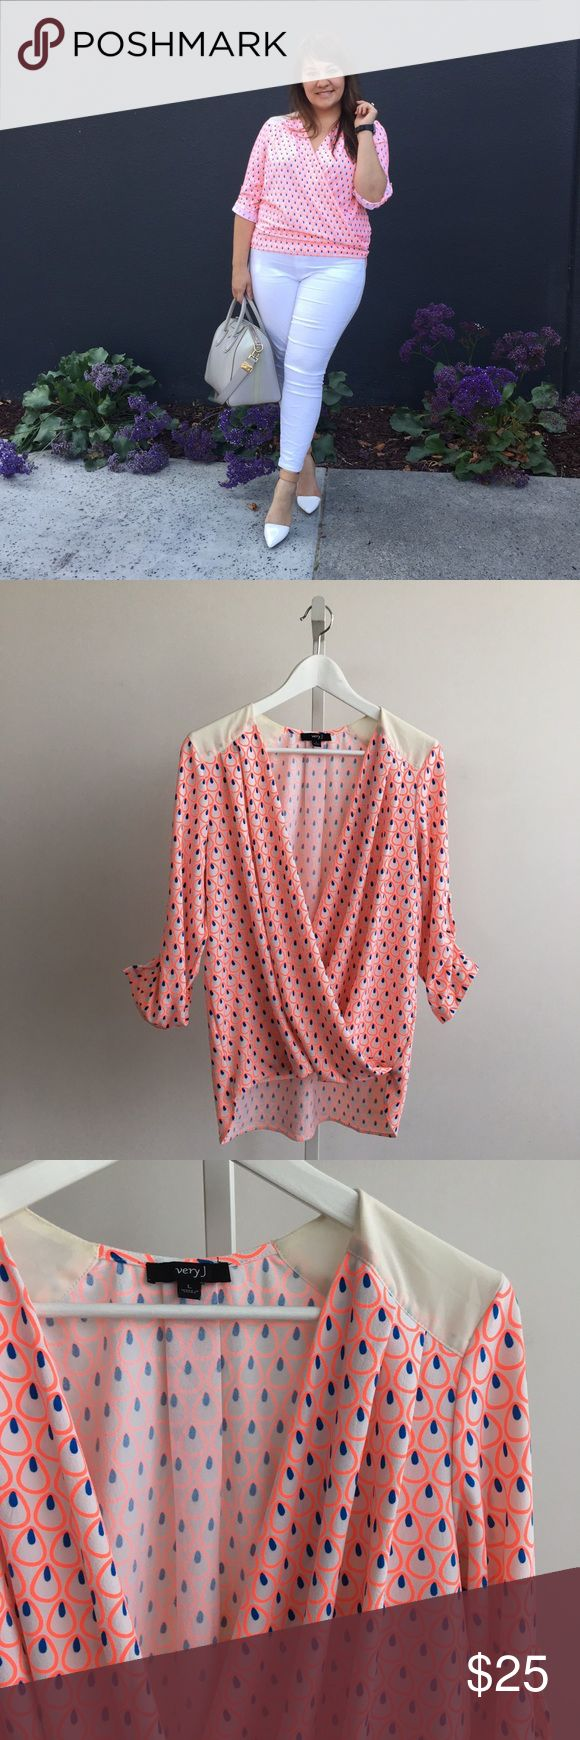 Bright Printed Faux Wrap Top Vibrant and flattering faux wrap top with a neon coral and blue design. Sleeves can be worn down or rolled up with button tab. Excellent used condition. Please carefully review each photo before purchase as they are the best descriptors of the item. My price is firm. No trades. First come, first served. Thank you! :) Very J Tops Blouses